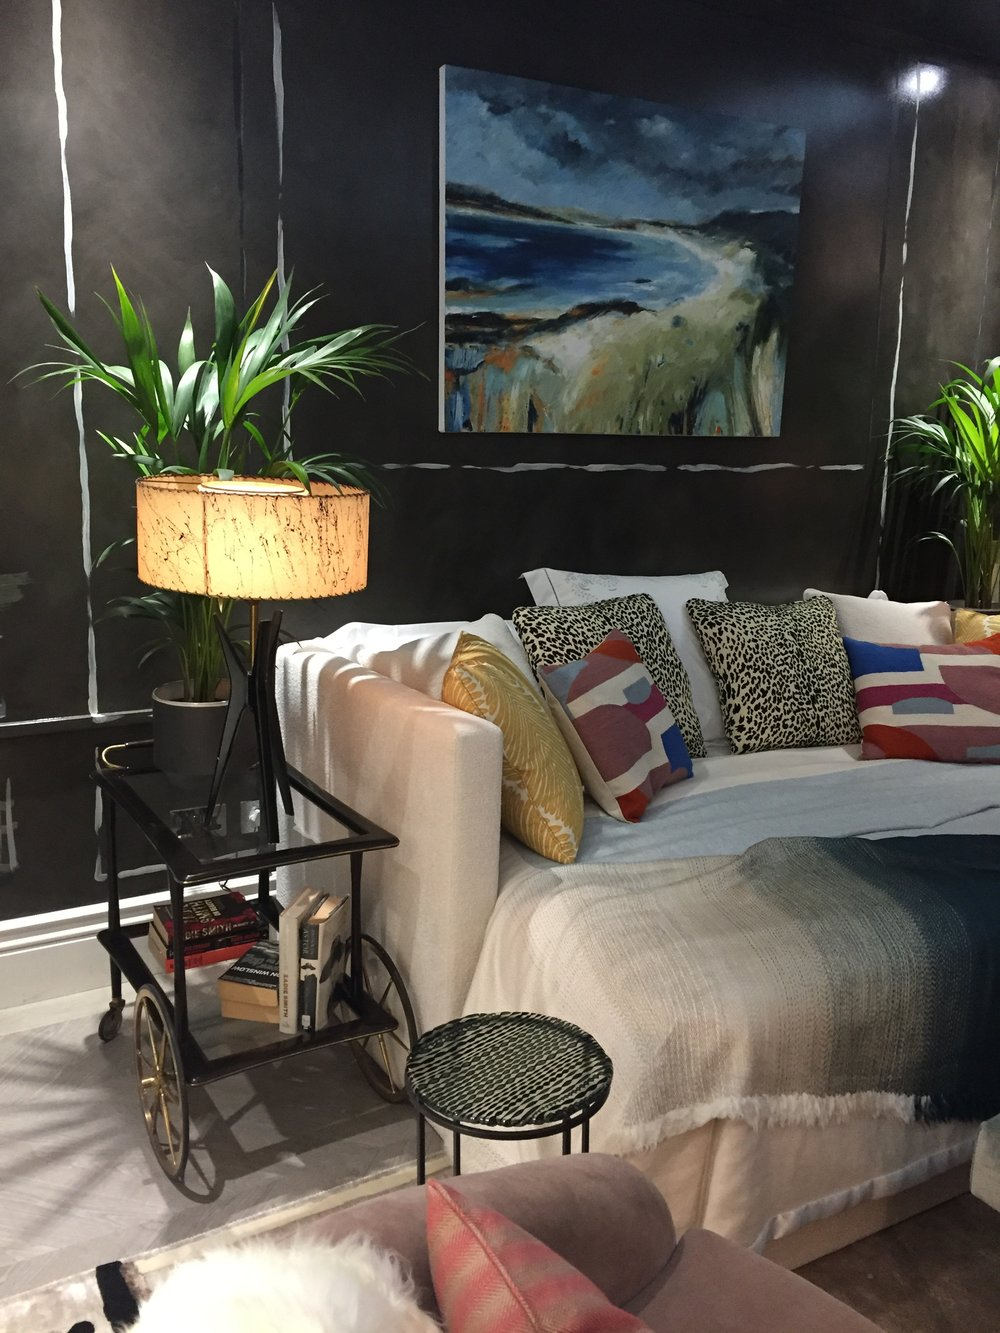 Holiday House London, An Interior Design Event With A Cause - Nocturne in Grey & Silver by Studio QD and Nicky Haslam JPG.JPG